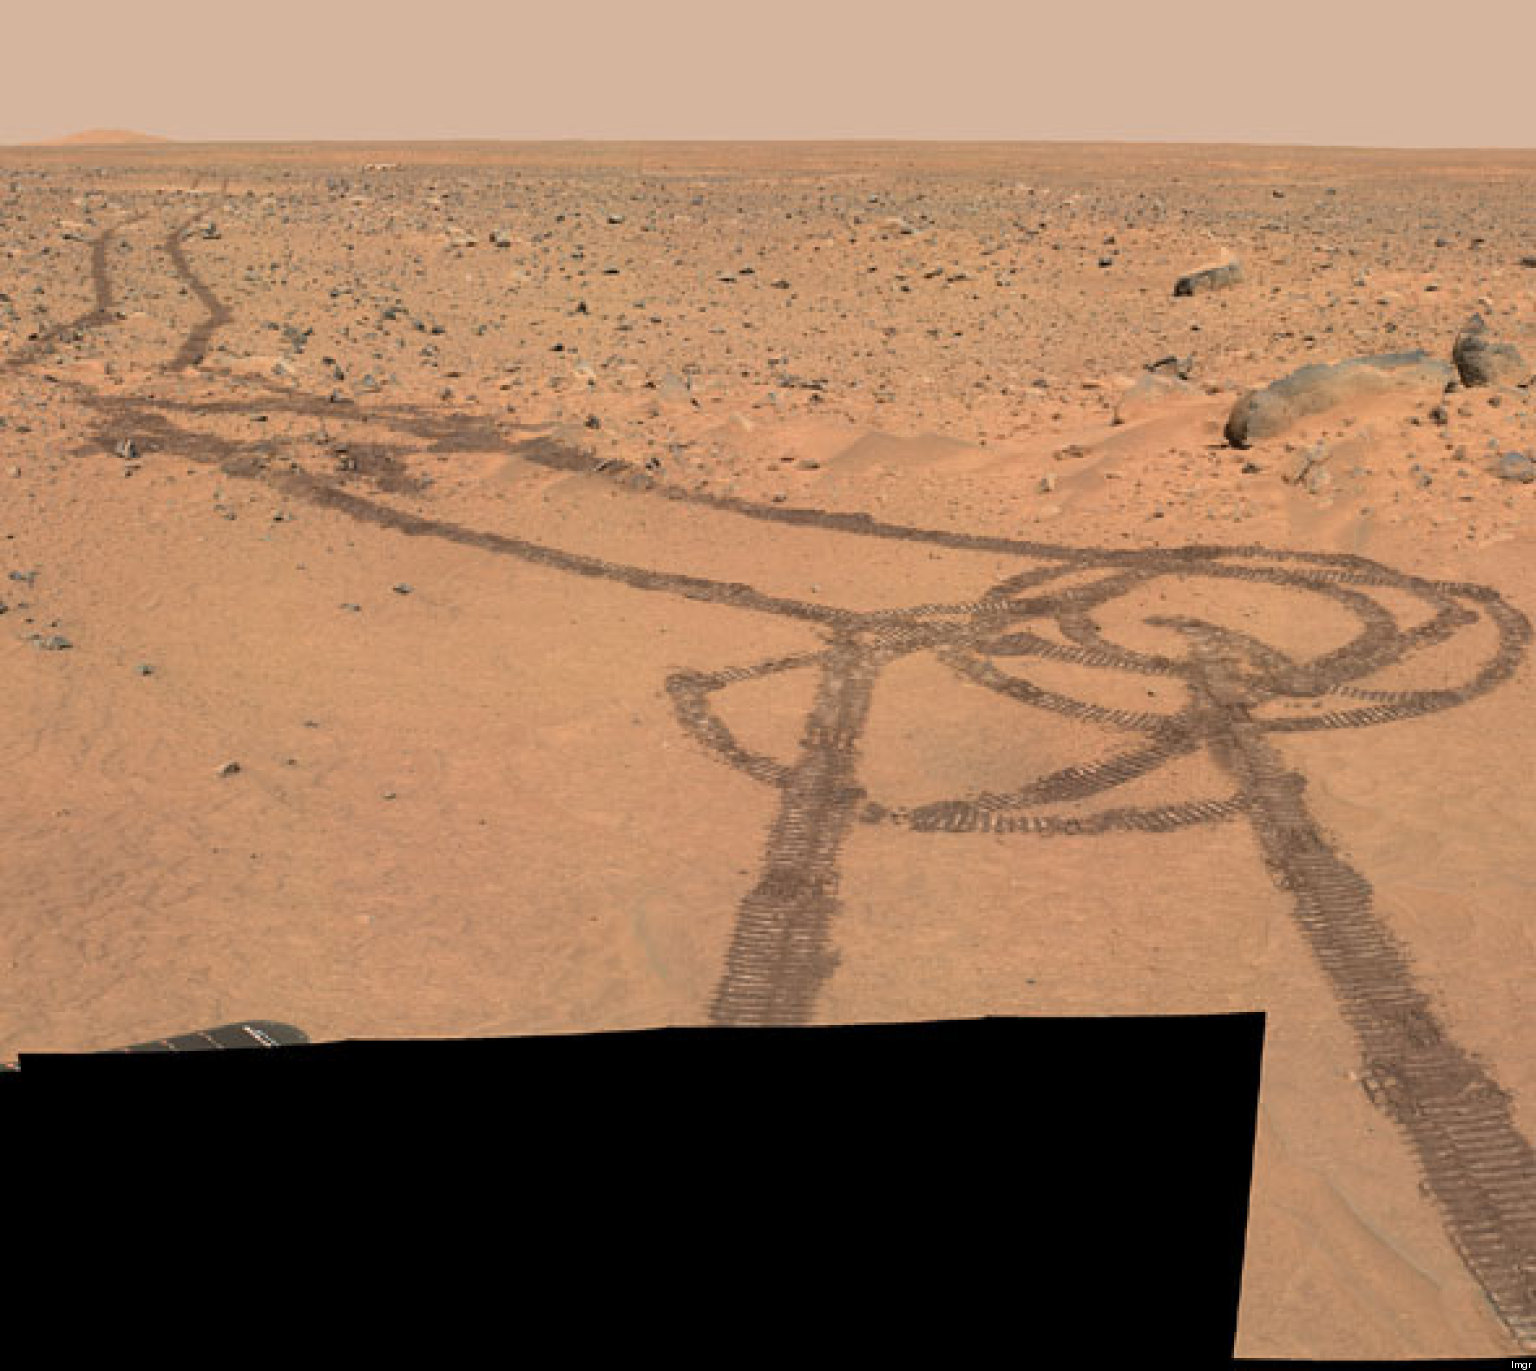 Who vandalized Mars with the Opportunity rover and was it